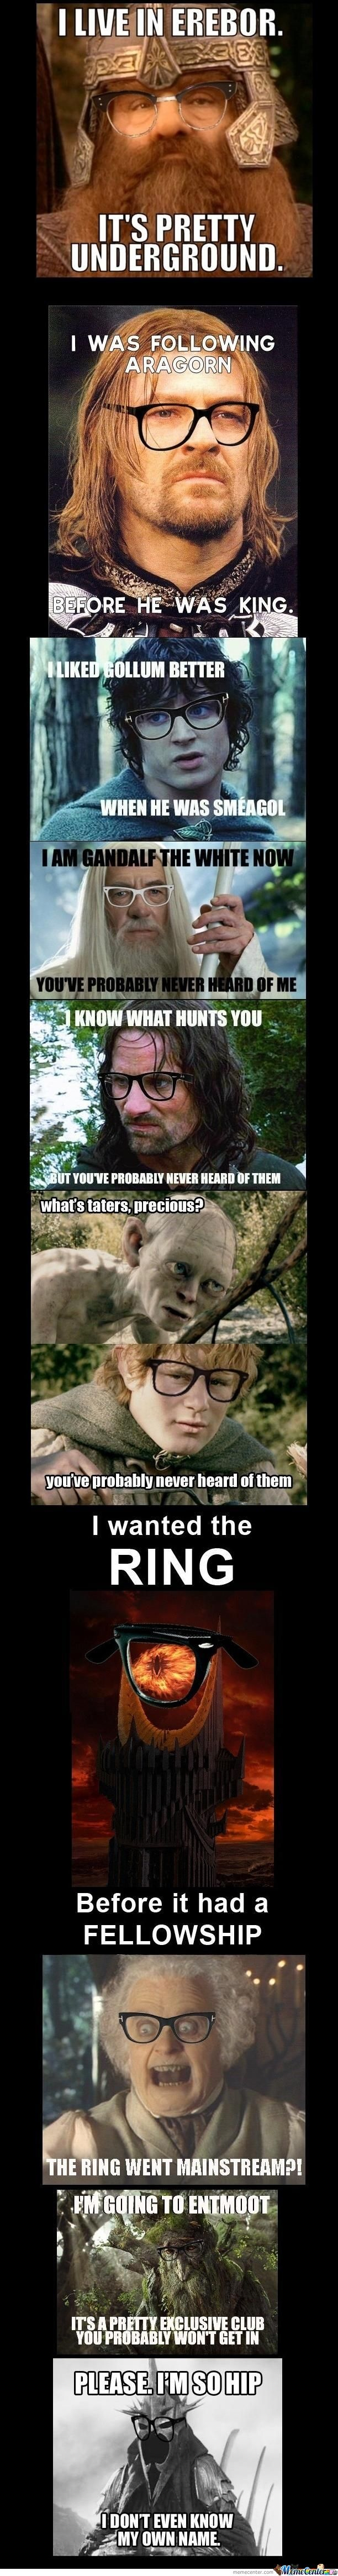 Hipster Lord of the Rings.: Geek, Hipster Lotr, Laughing, Funny Things, Hipster Lord, Nerdy, Hobbit, So Funny, Lord Of The Rings